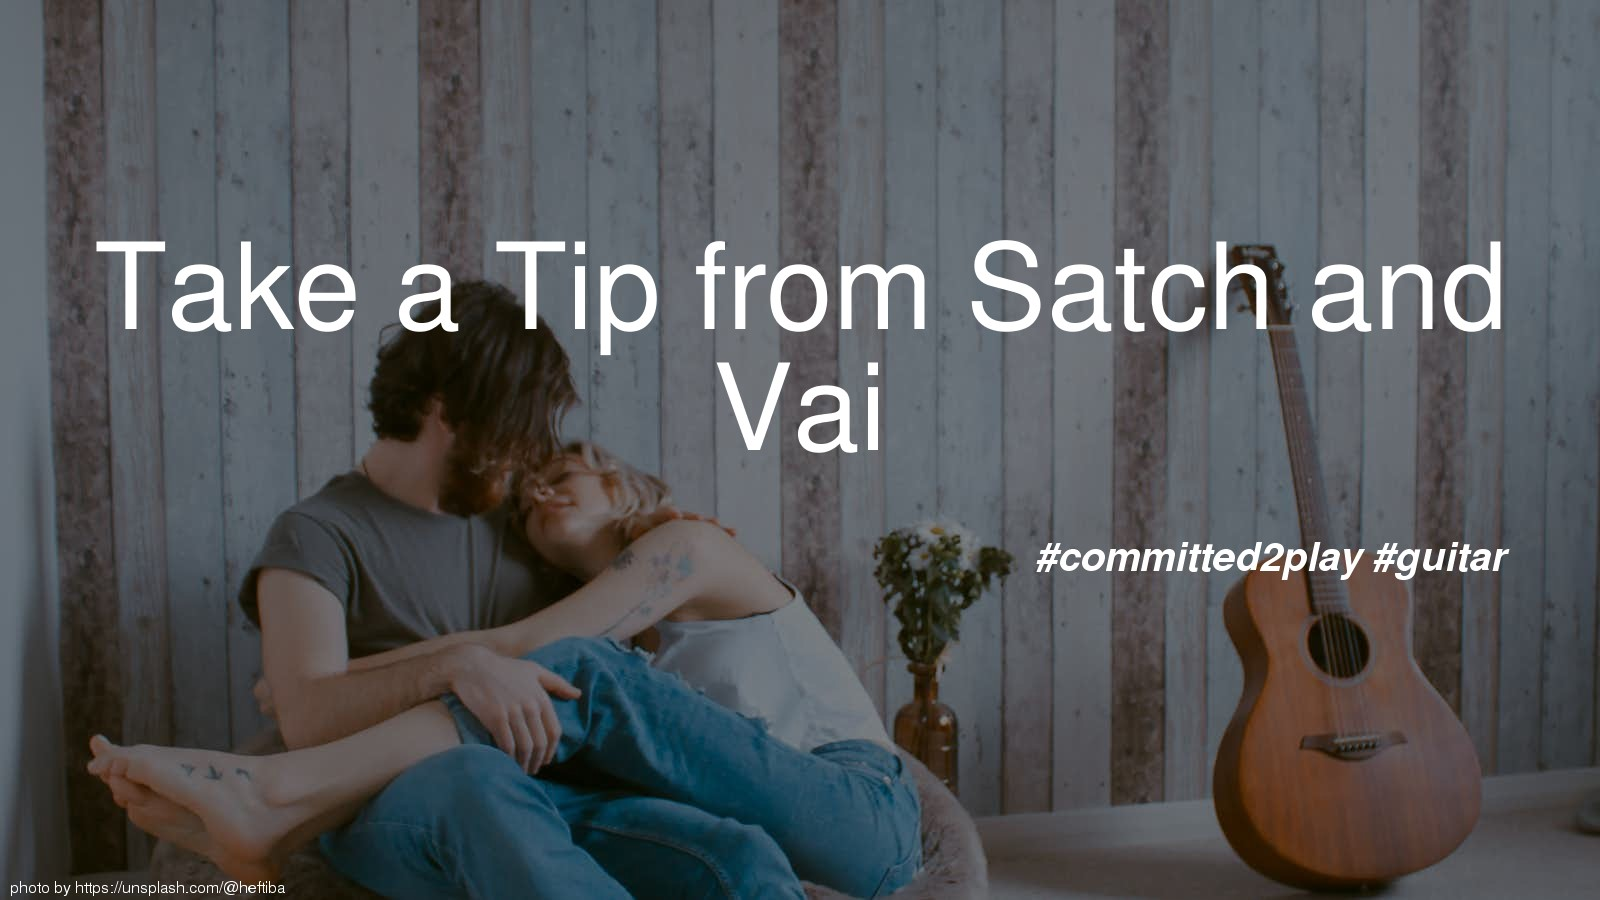 Take a Tip from Satch and Vai